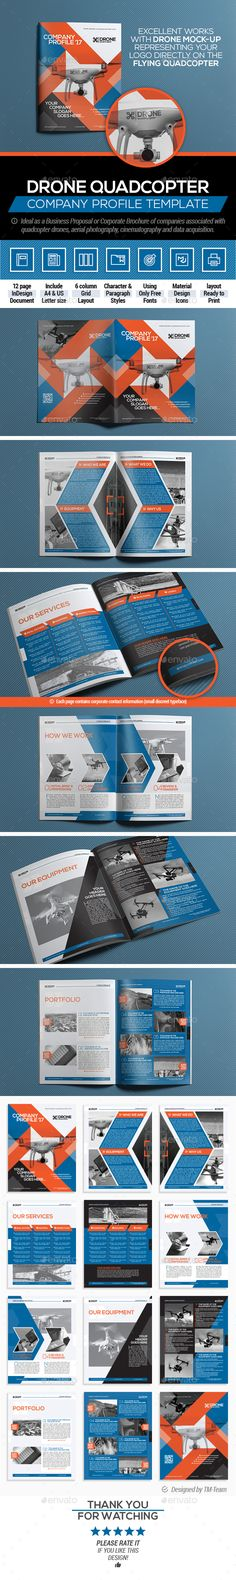 Drone Quadcopter - Company Profile | Business Proposal Template InDesign INDD